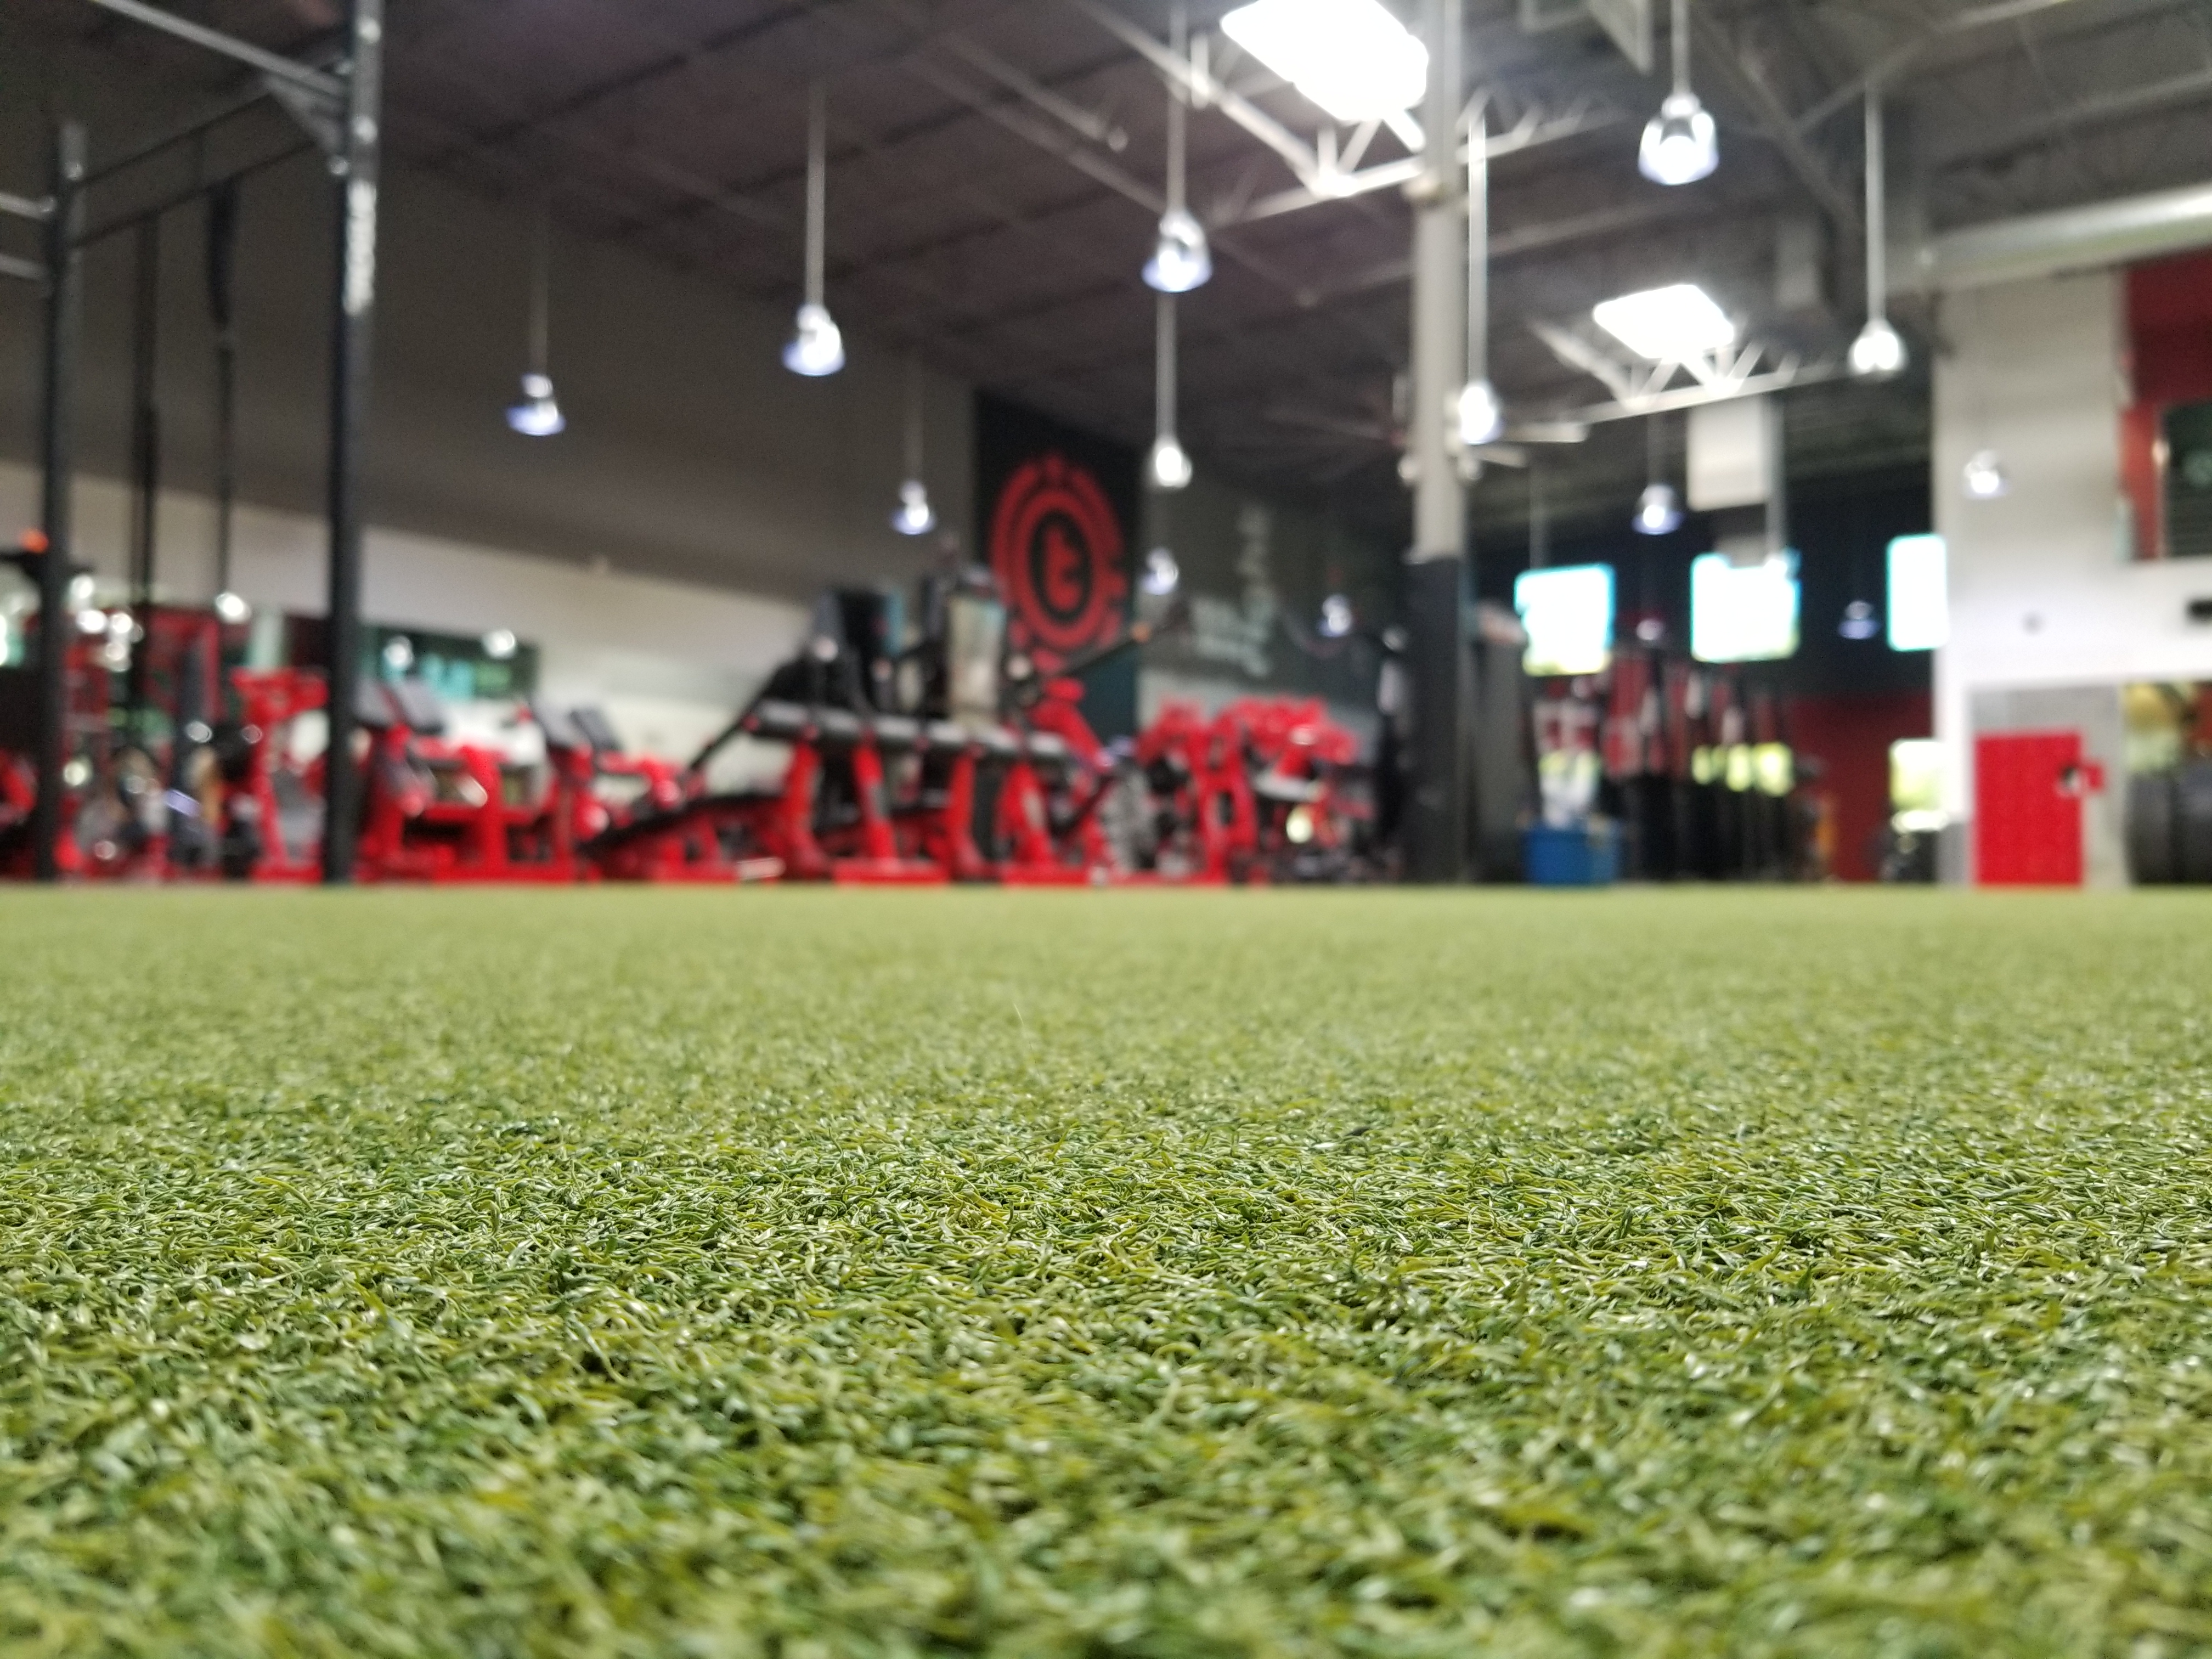 Teqneeq Functional Health Center reviews | Fitness & Instruction at 10772 Thornmint Rd - San Diego CA